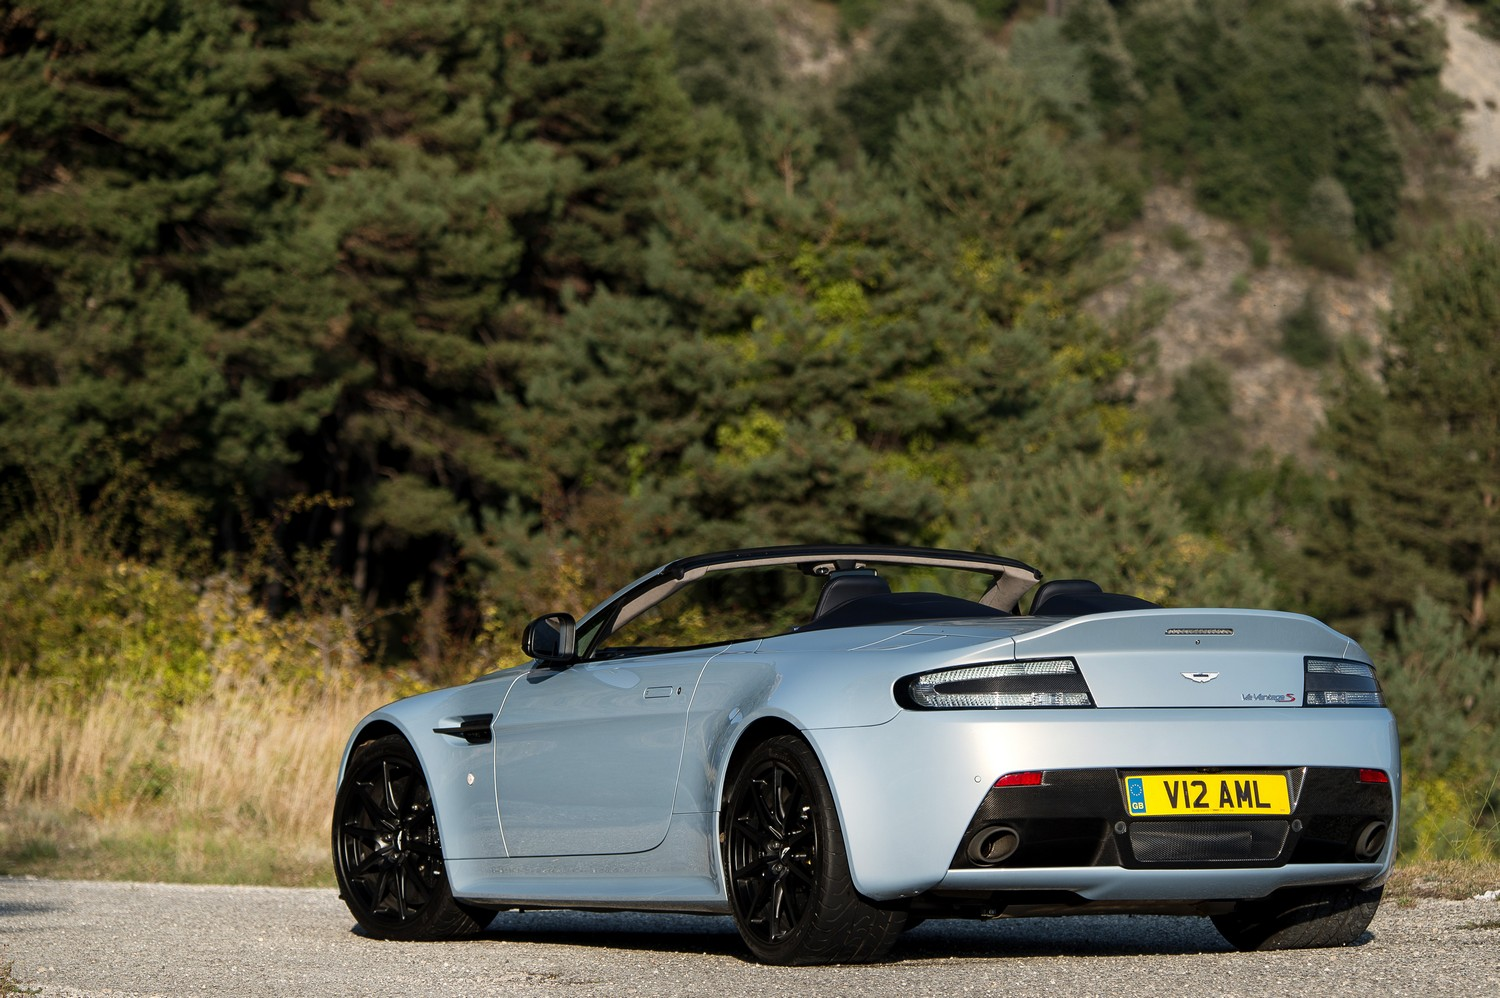 Aston Martin V12 Vantage S Roadster Road Test In Nice France